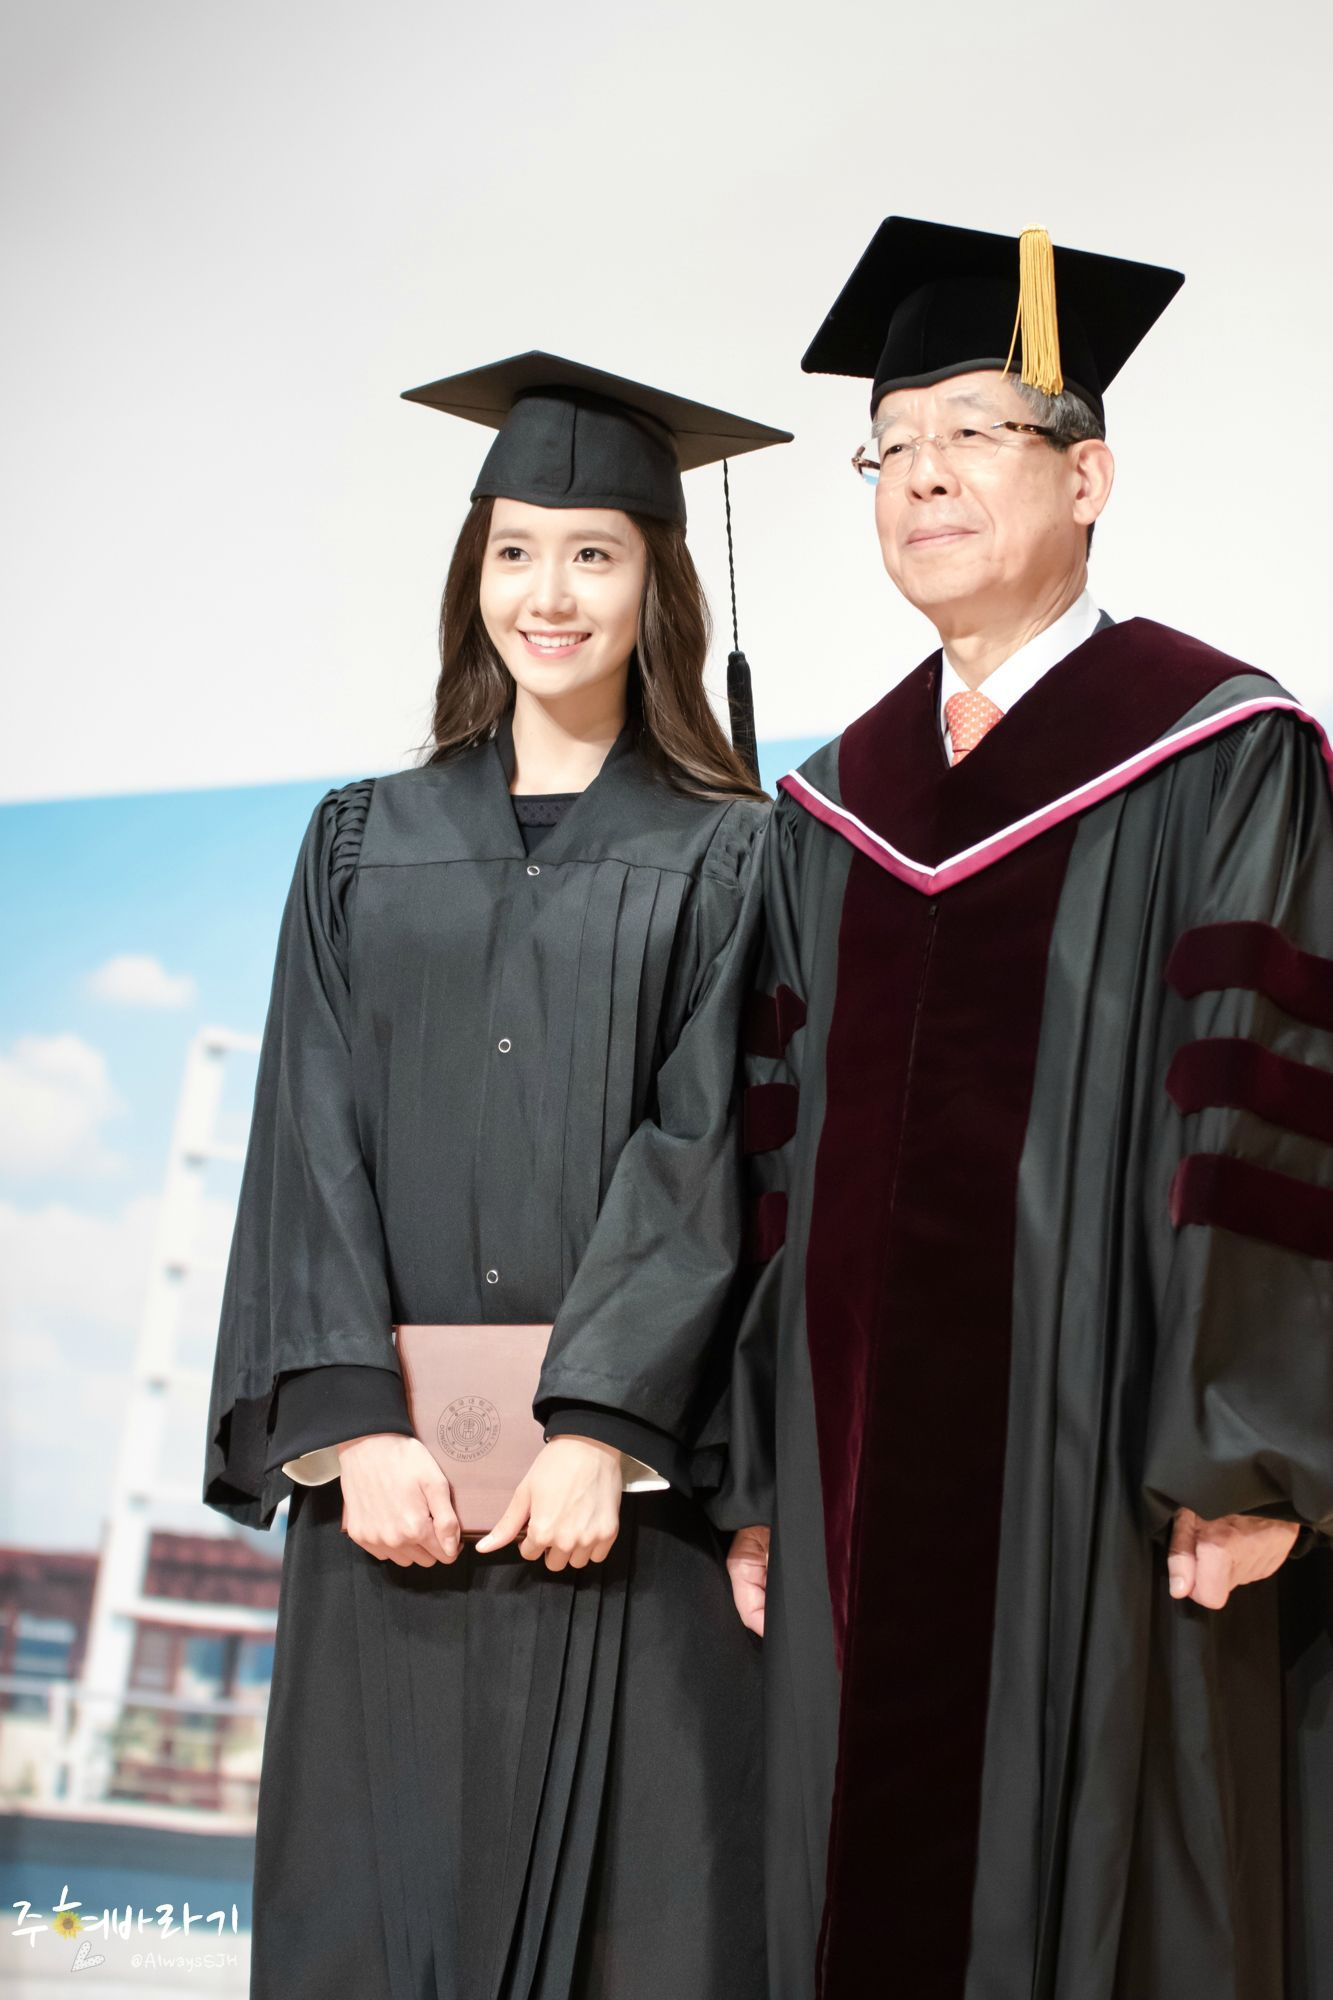 #Yoona #윤아 #ユナ #SNSD #少女時代 #소녀시대 #GirlsGeneration 150224 Graduation from Dongguk University AlwaysSJH